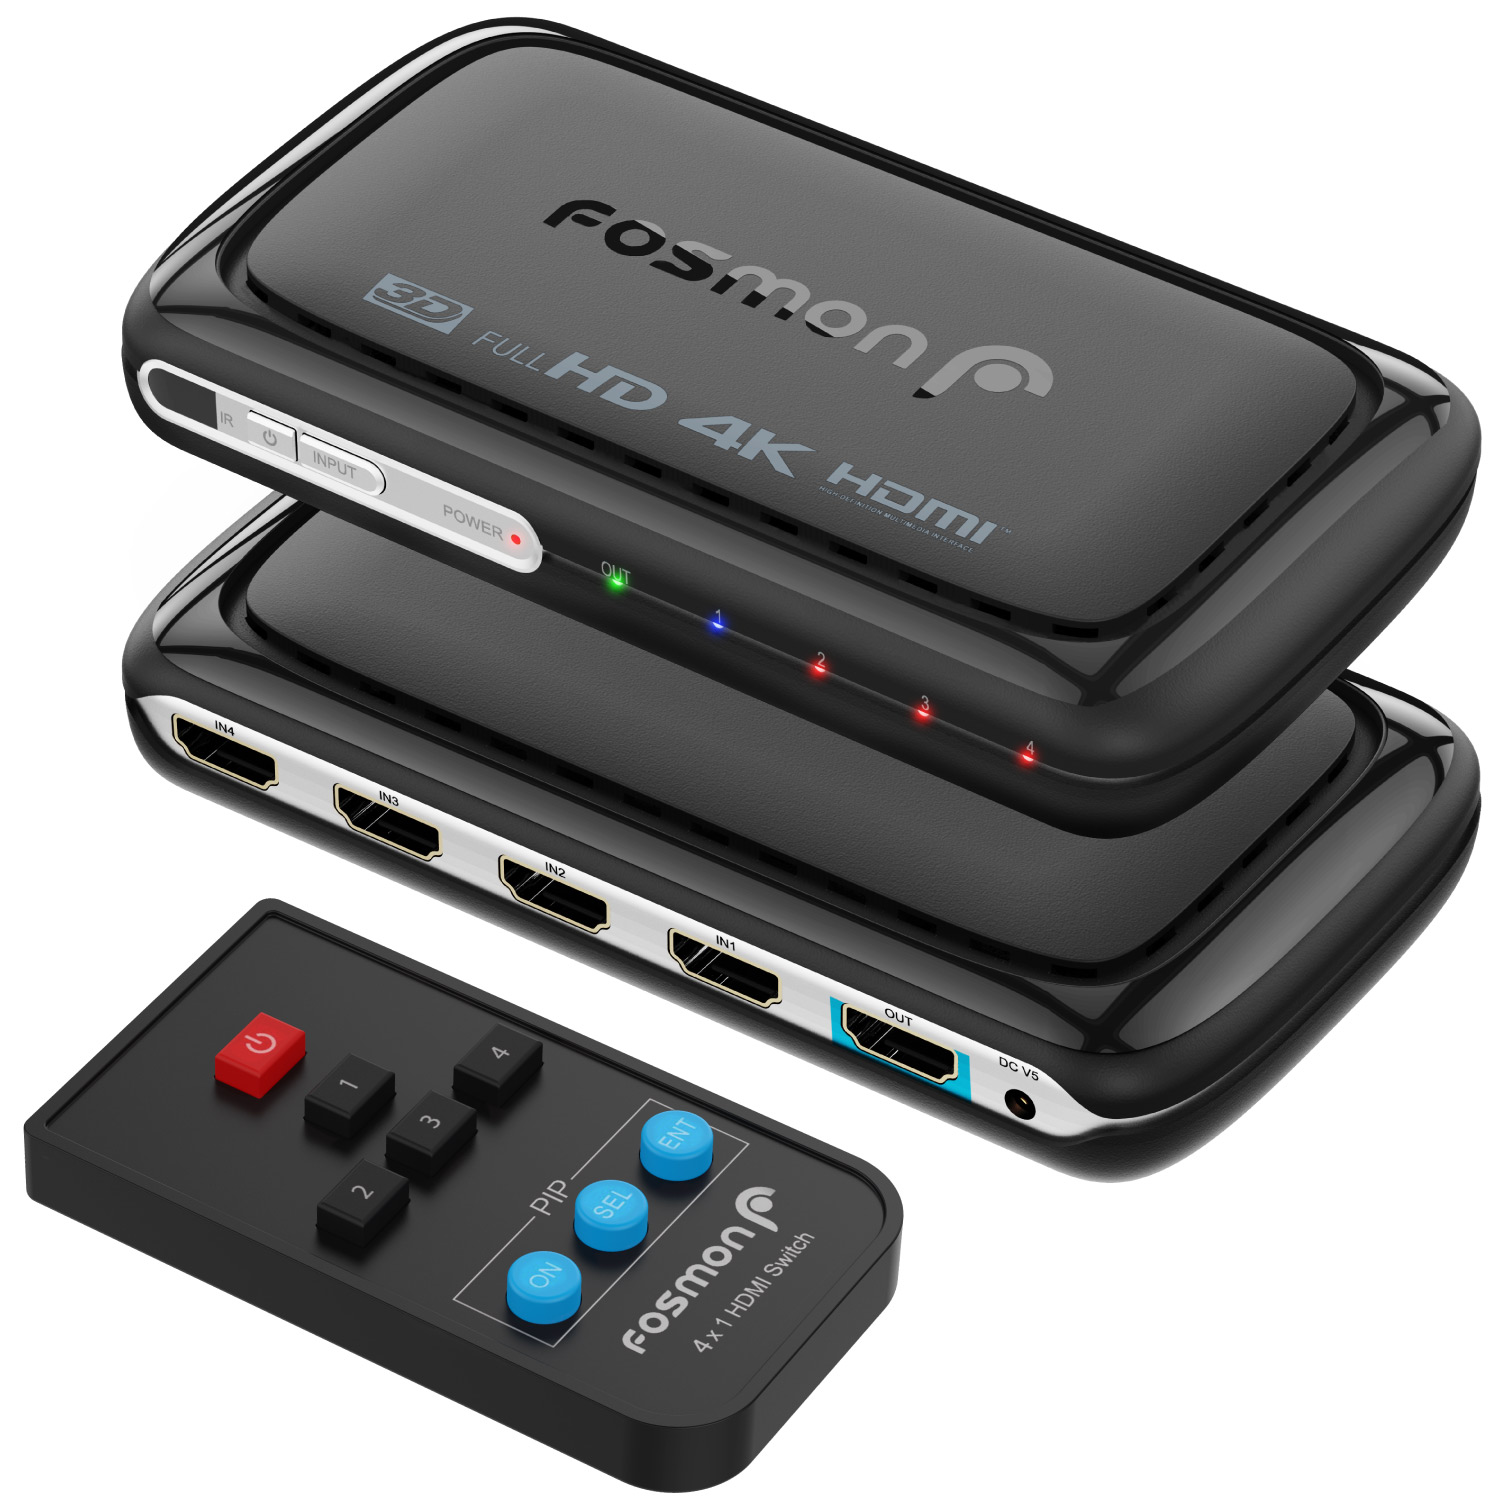 Fosmon 4-Port 4K x 2K HDMI Switch Switcher Splitter with PIP, Remote Control & AC Adapter, PS4, Game Consoles, PC & More